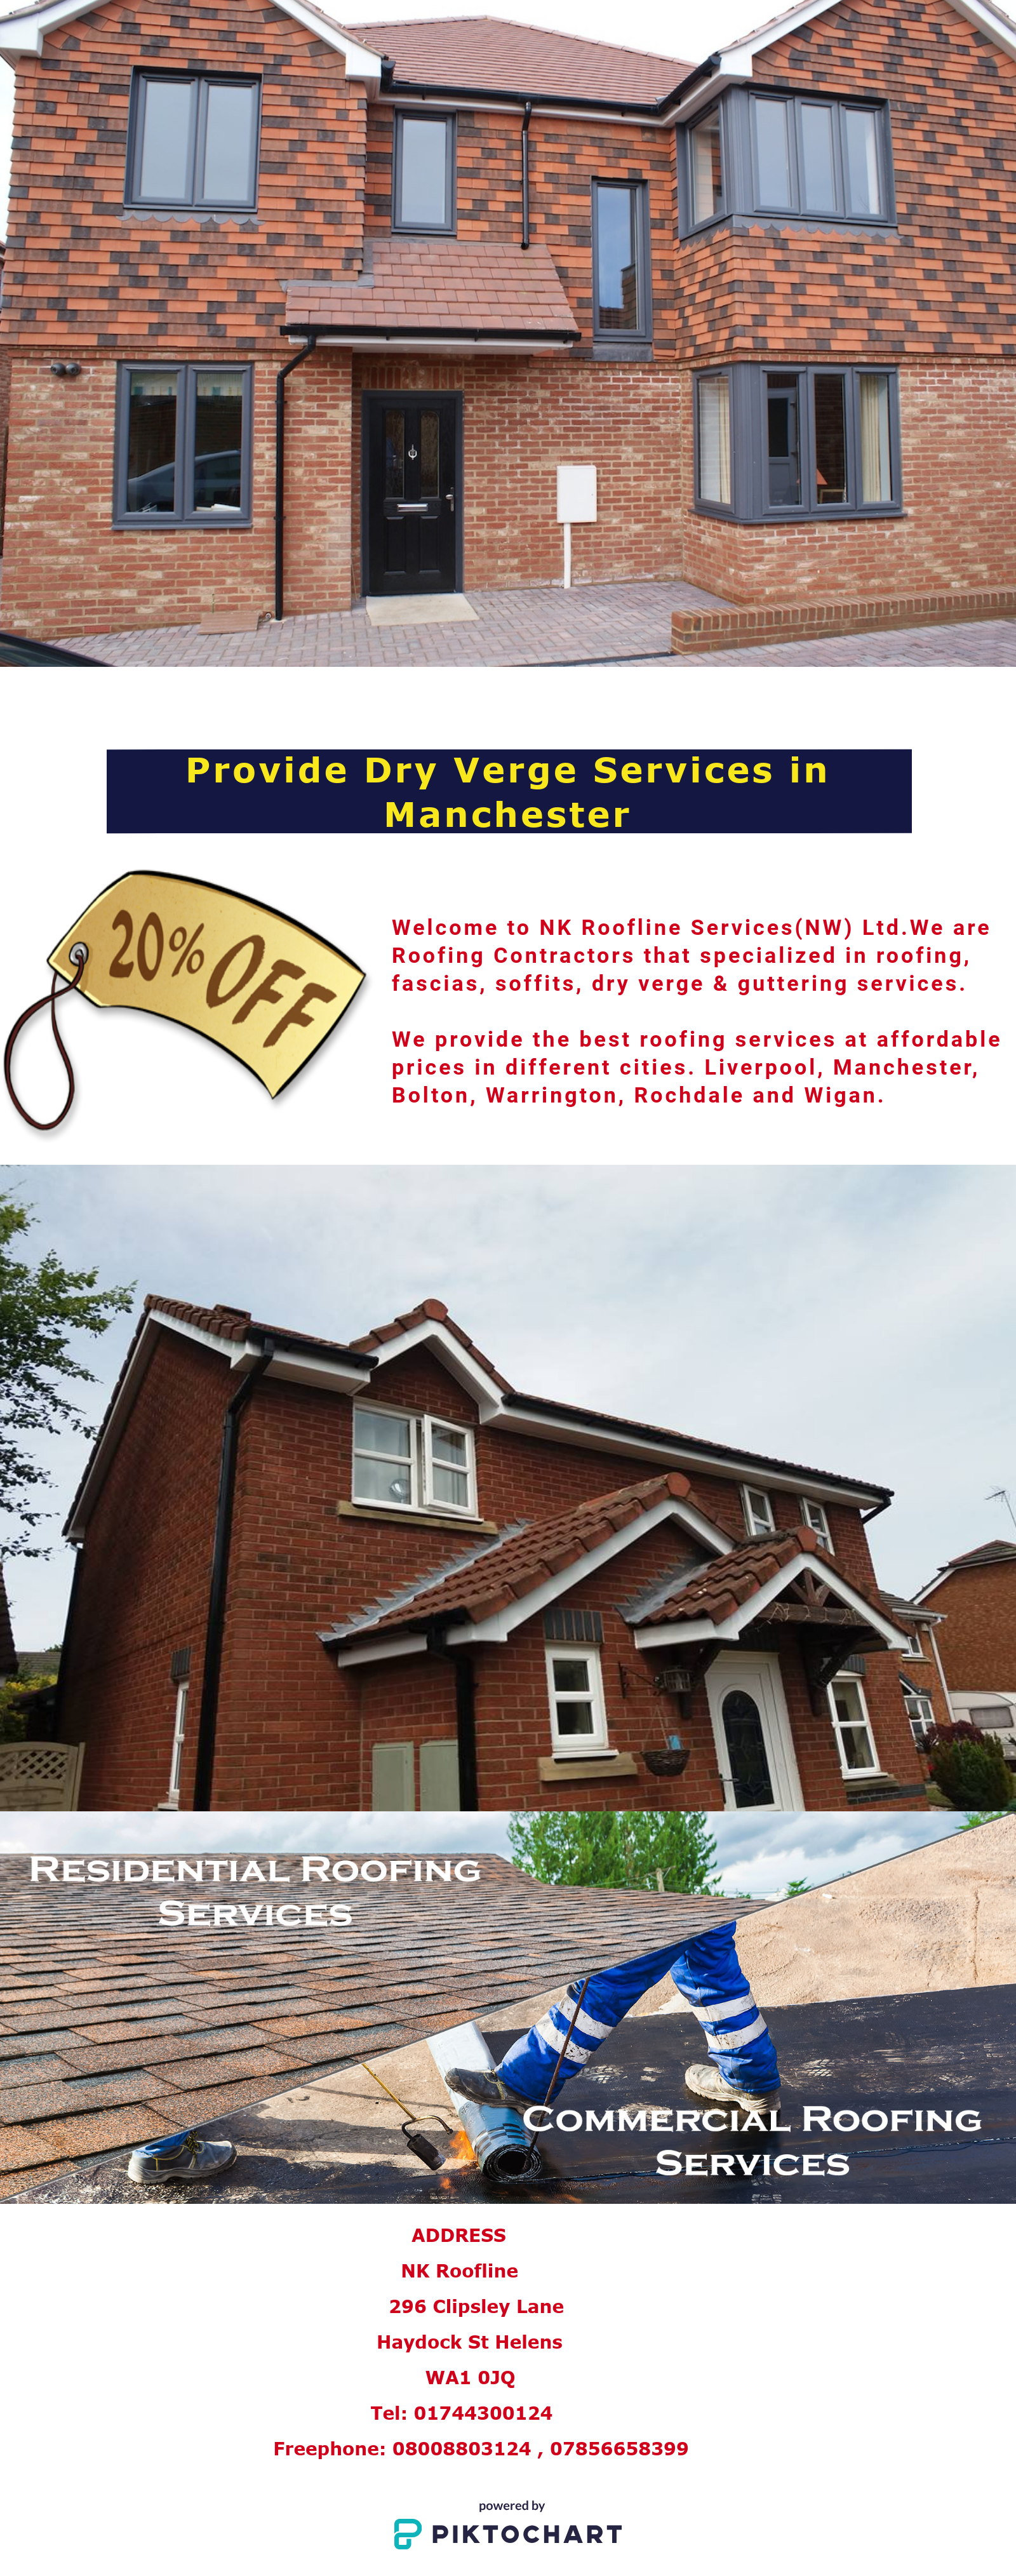 If You Find Best Roofer Roofing Contractor In Uk Contact Nk Roofline We Provides Best Roofing Services At Affordable P Roofing Contractors Roofing Services Cool Roof